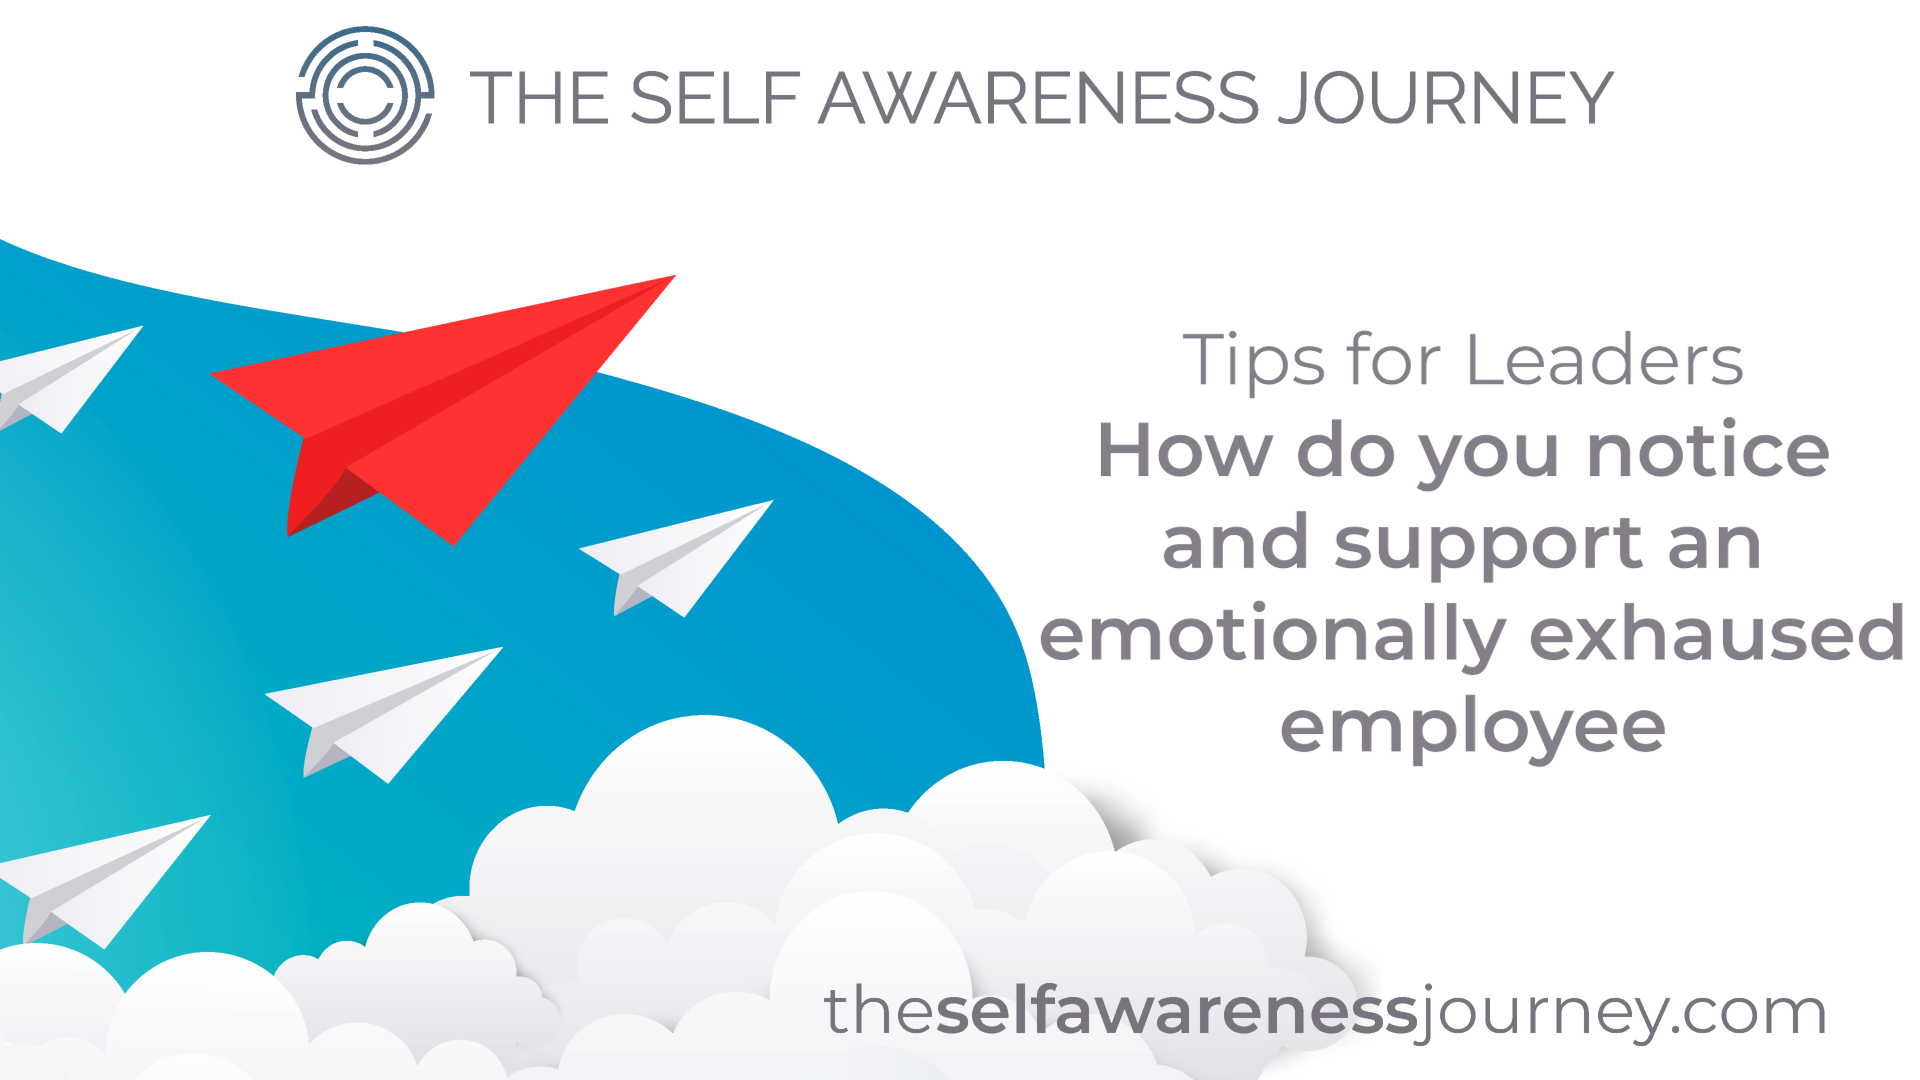 How do you Notice and Support an Emotionally Exhausted Employee?